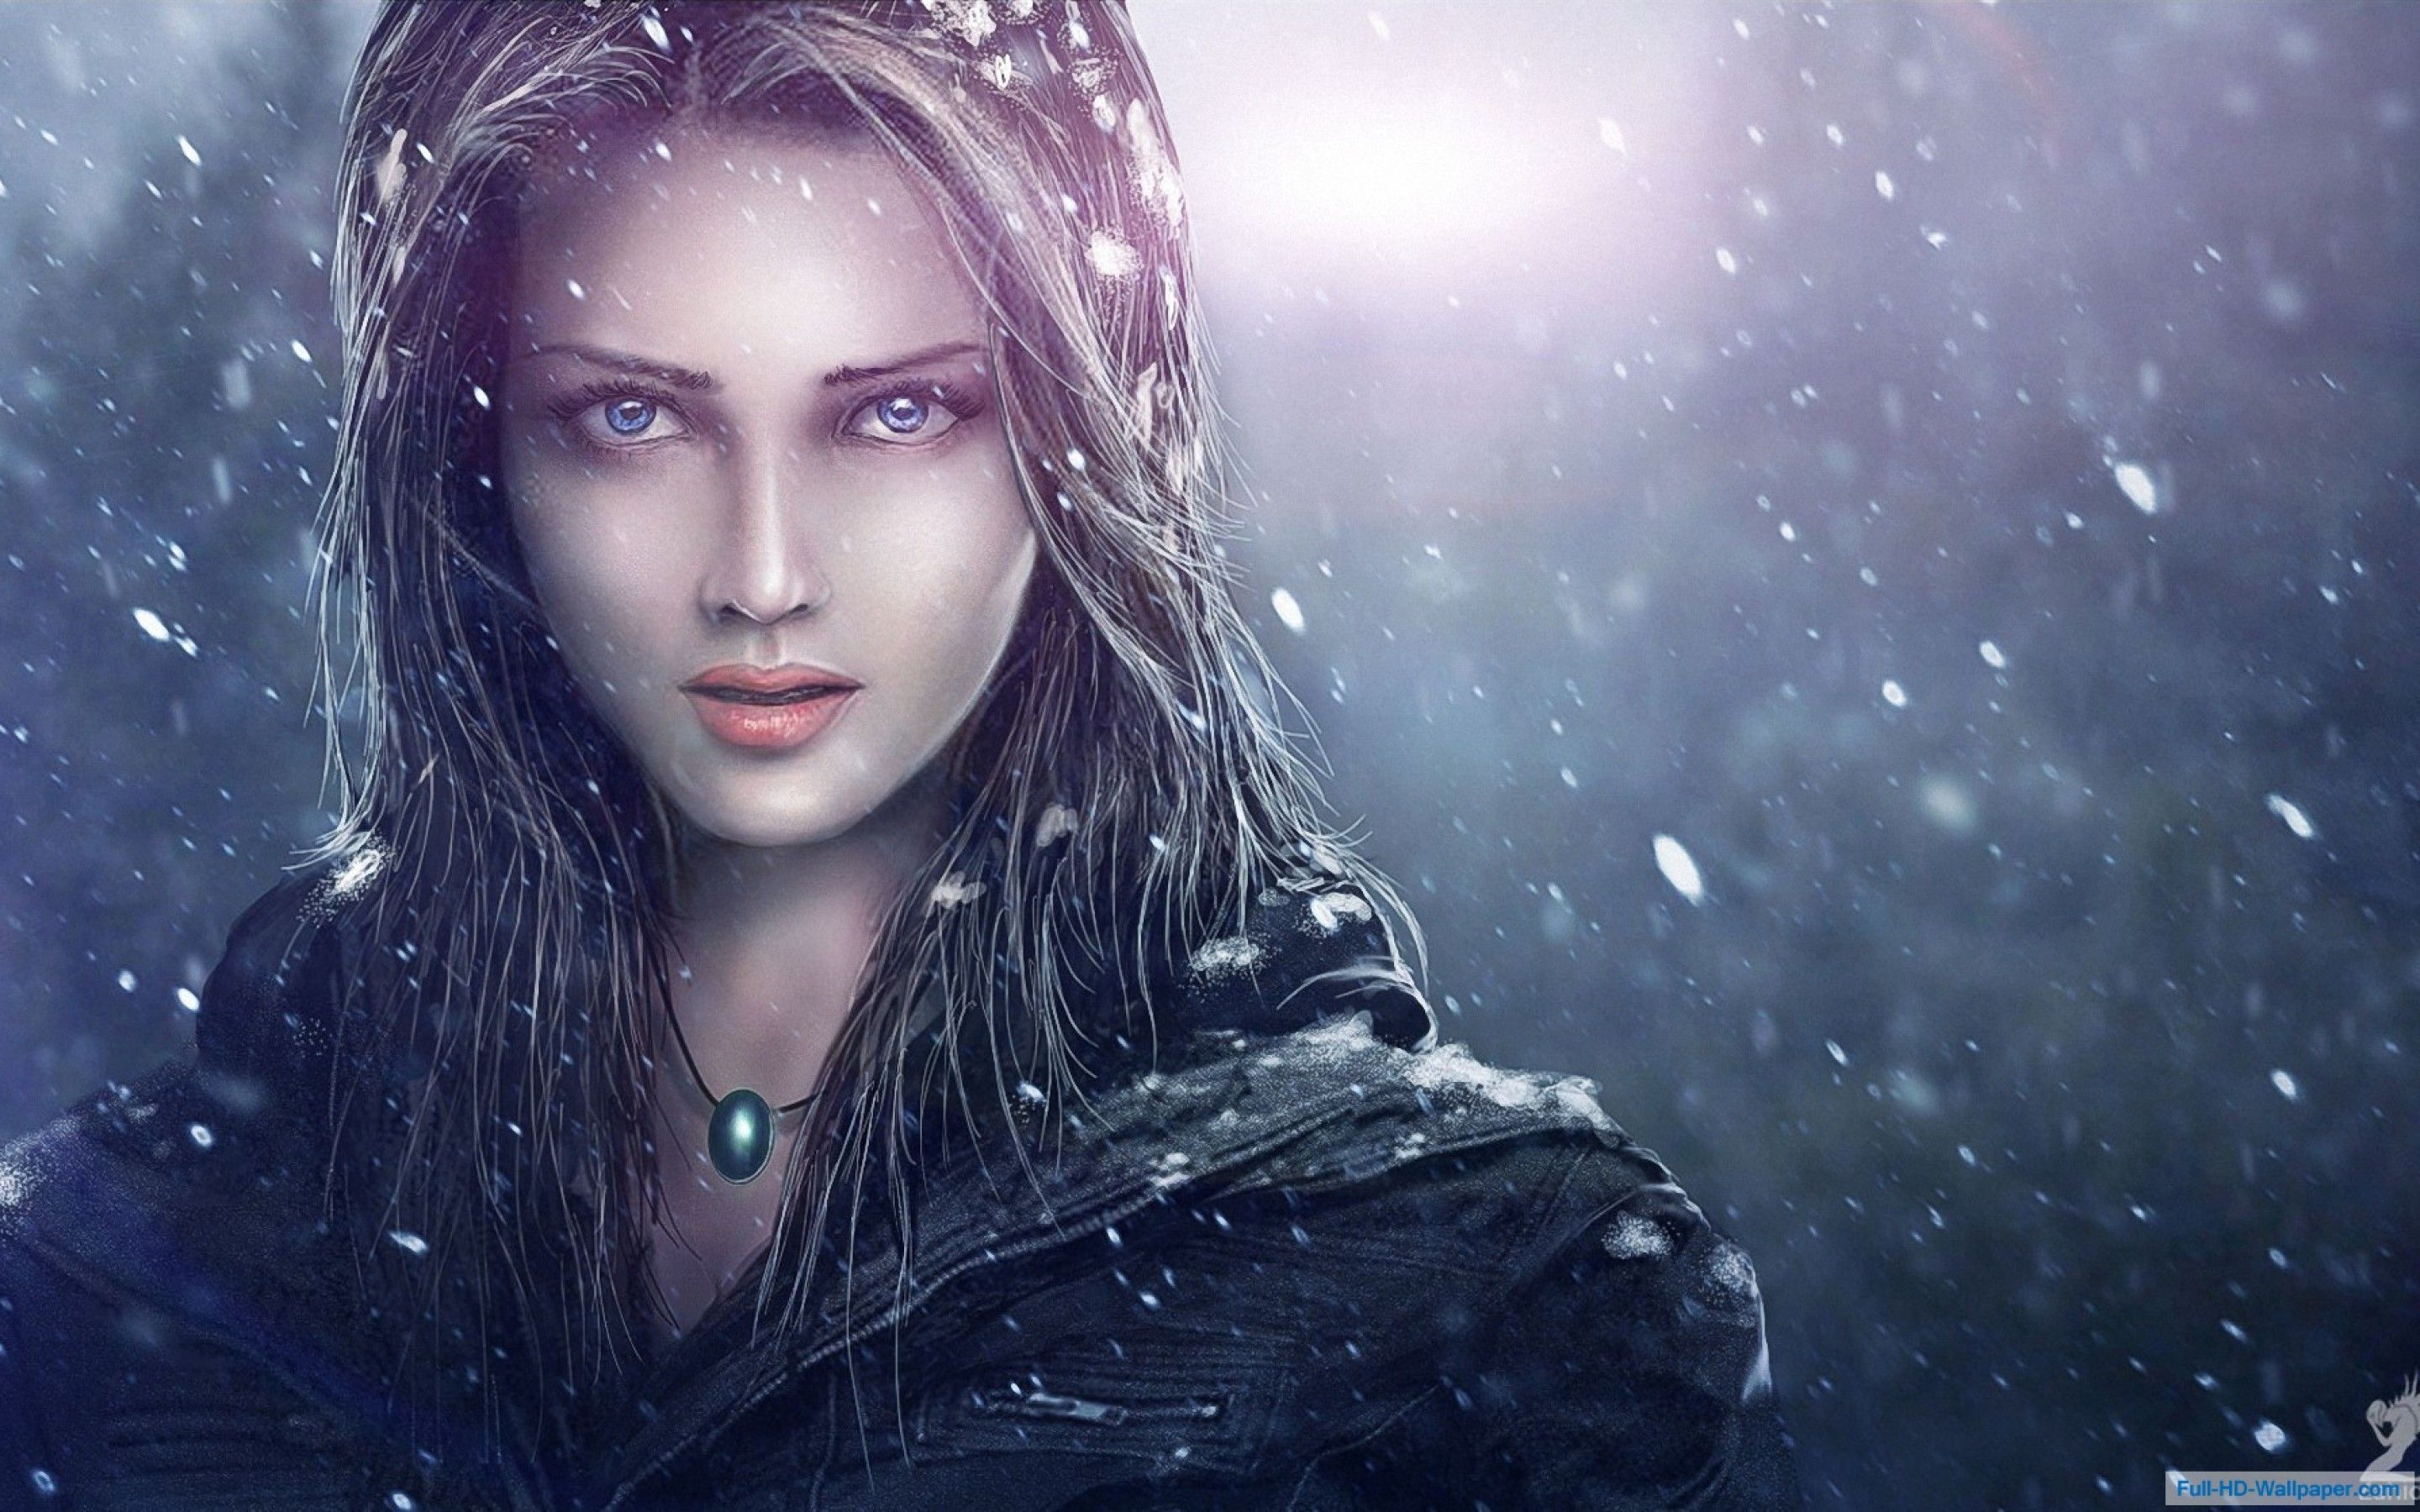 Fantasy Girl Wallpapers Top Free Fantasy Girl Backgrounds